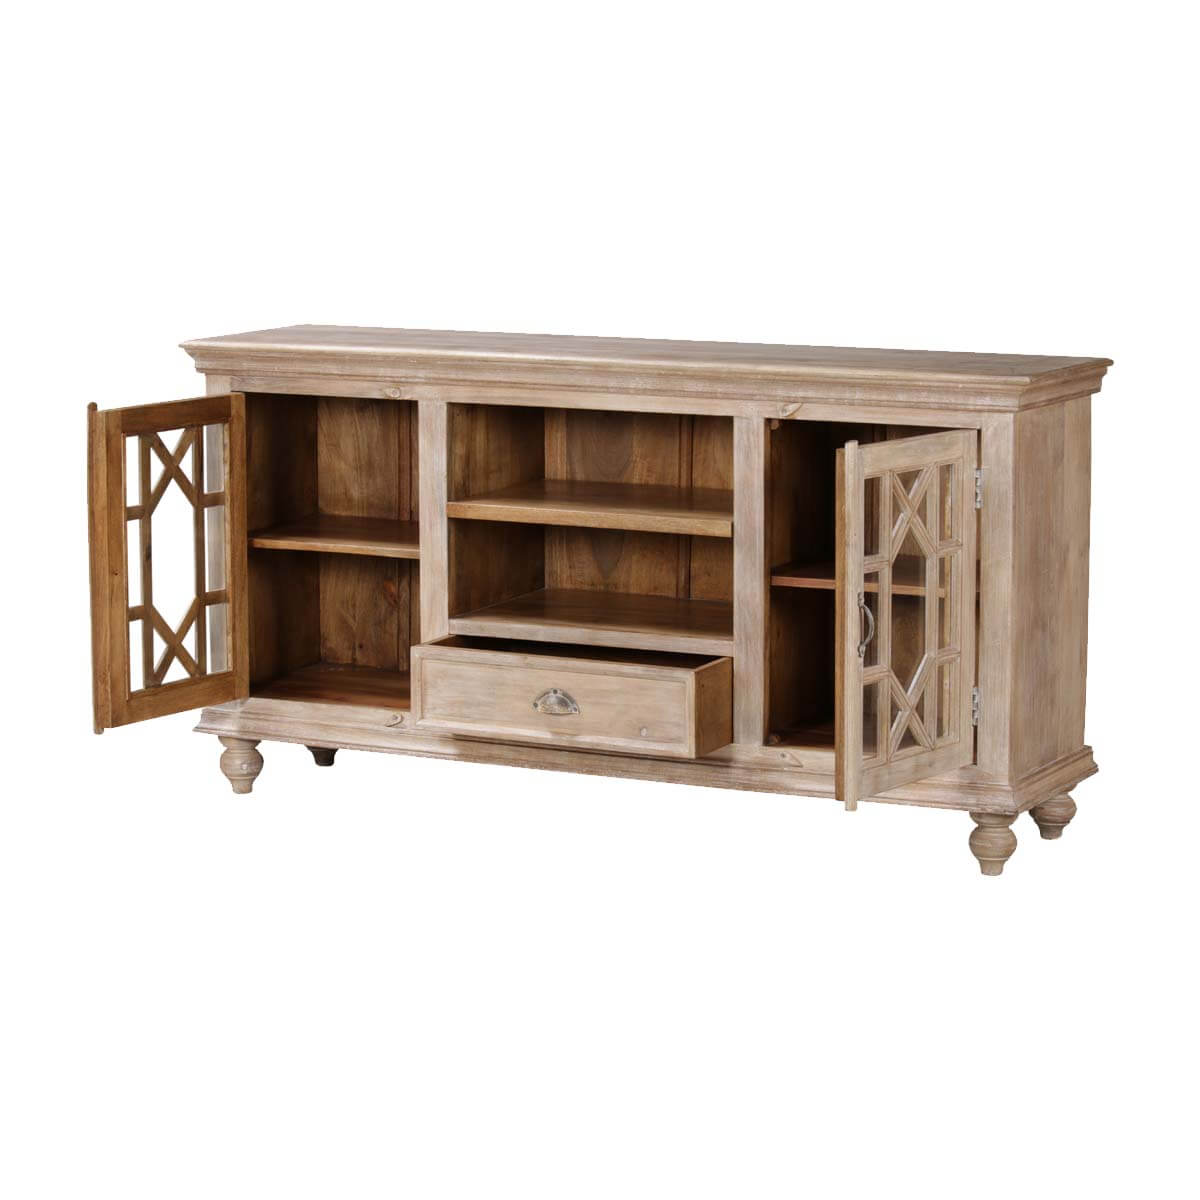 la rochelle ornate grille solid wood media cabinet